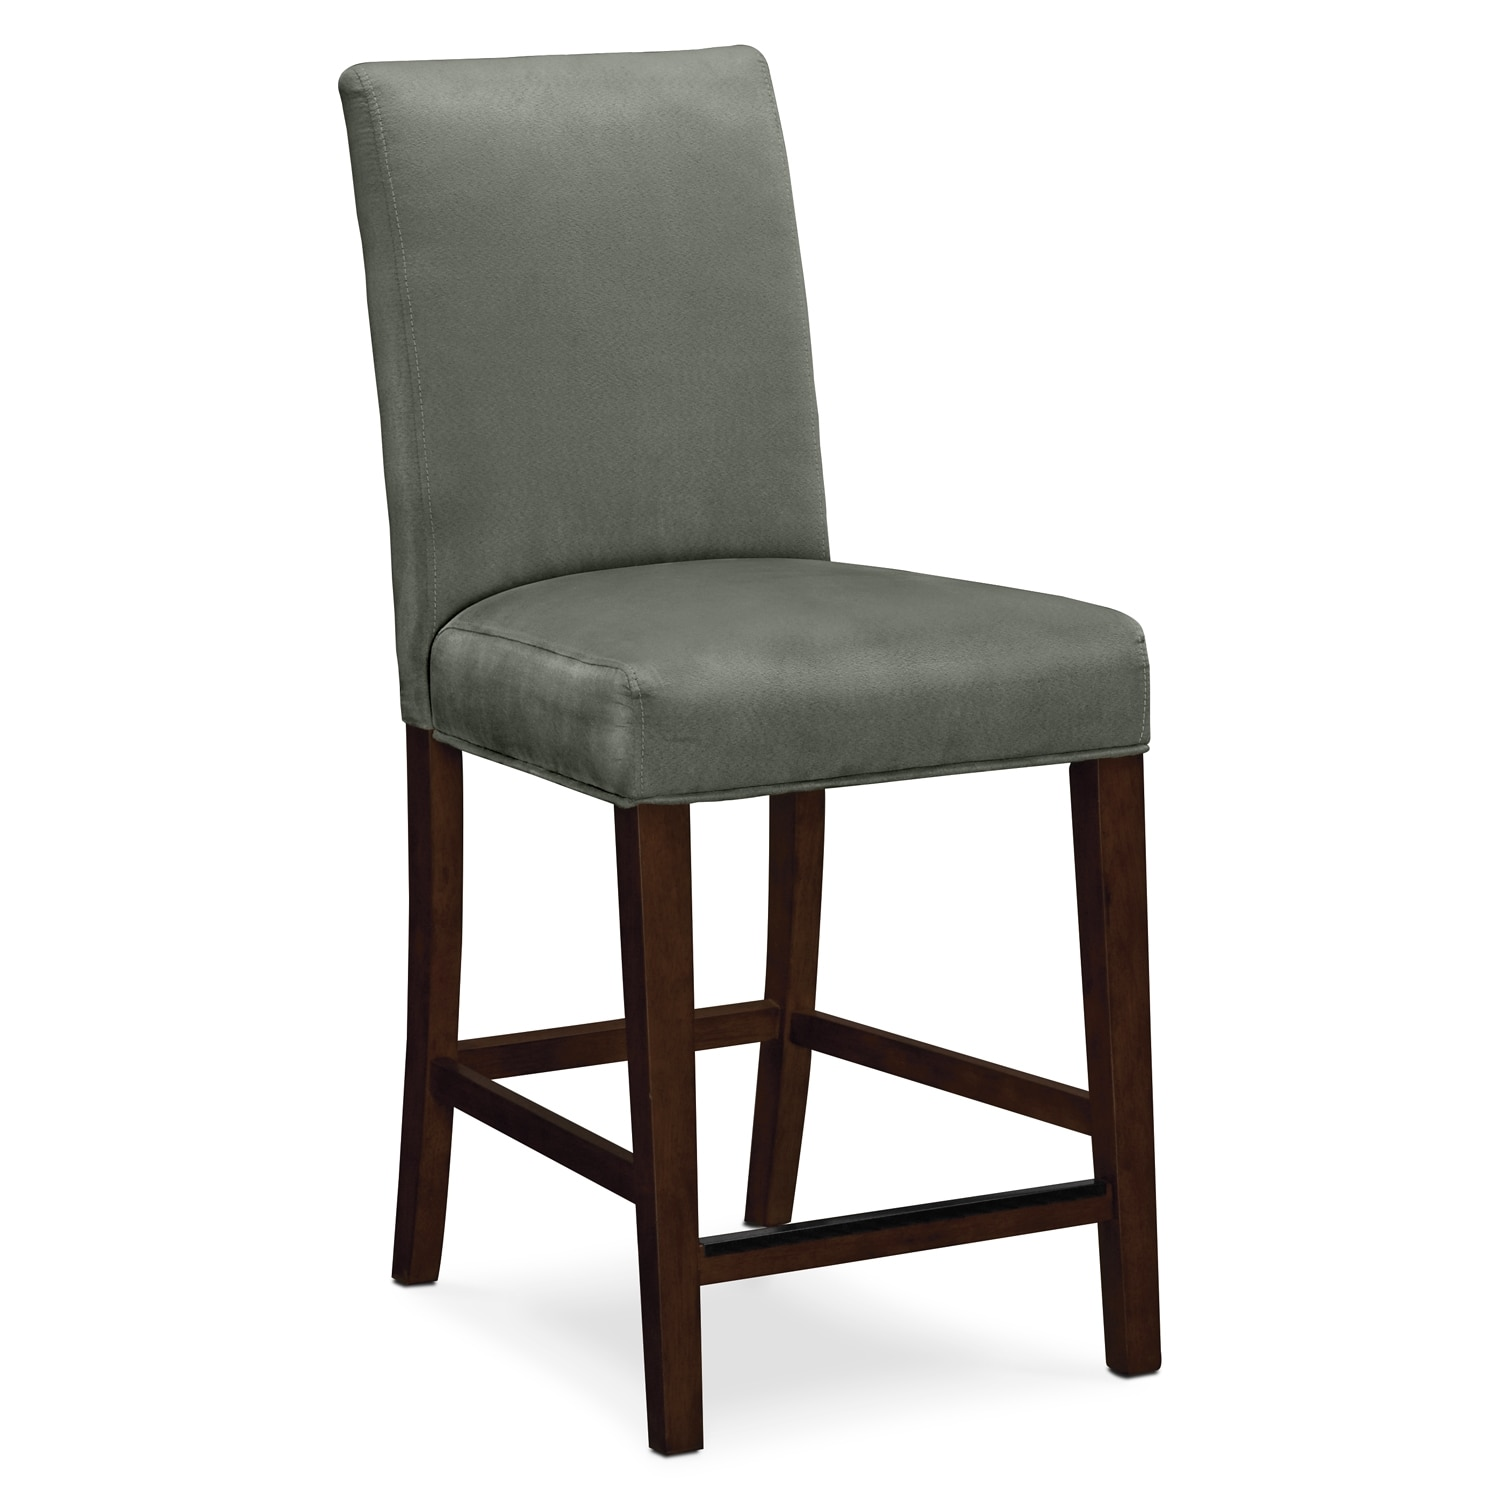 Alcove Counter-Height Stool - Sage